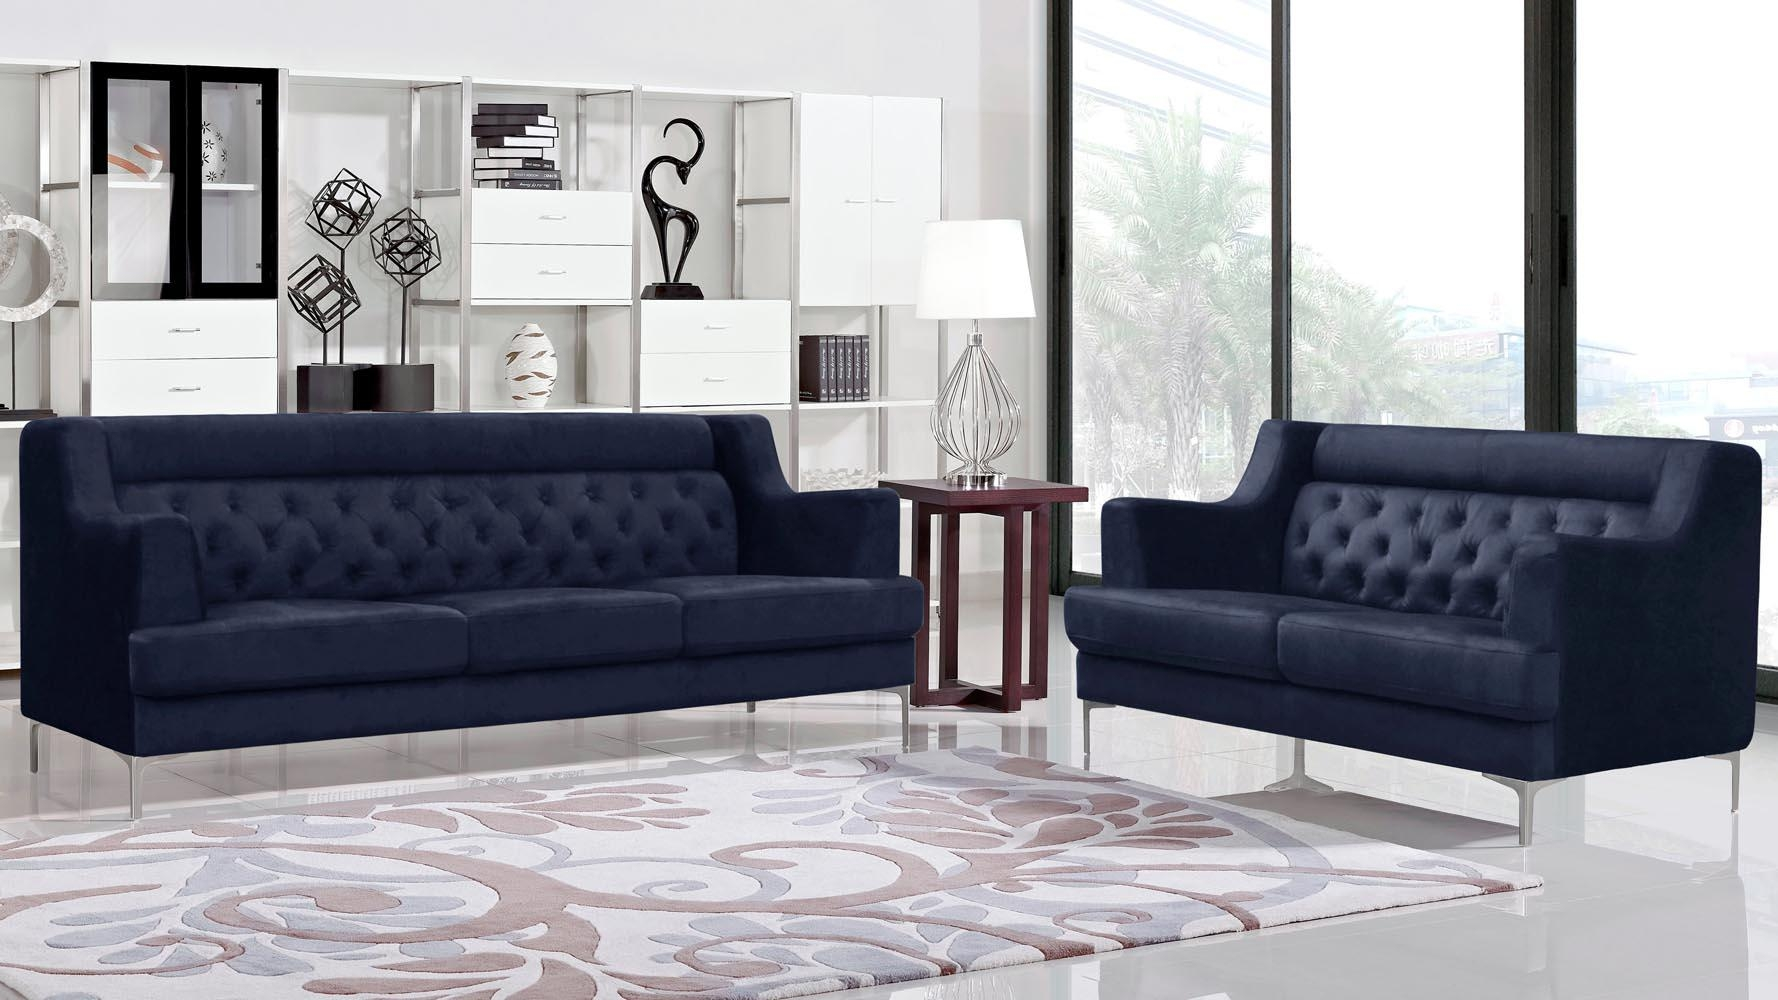 Zara Fabric Tufted Sofa With Chrome Legs – Navy Blue | Zuri Furniture Within Blue Tufted Sofas (Image 22 of 22)